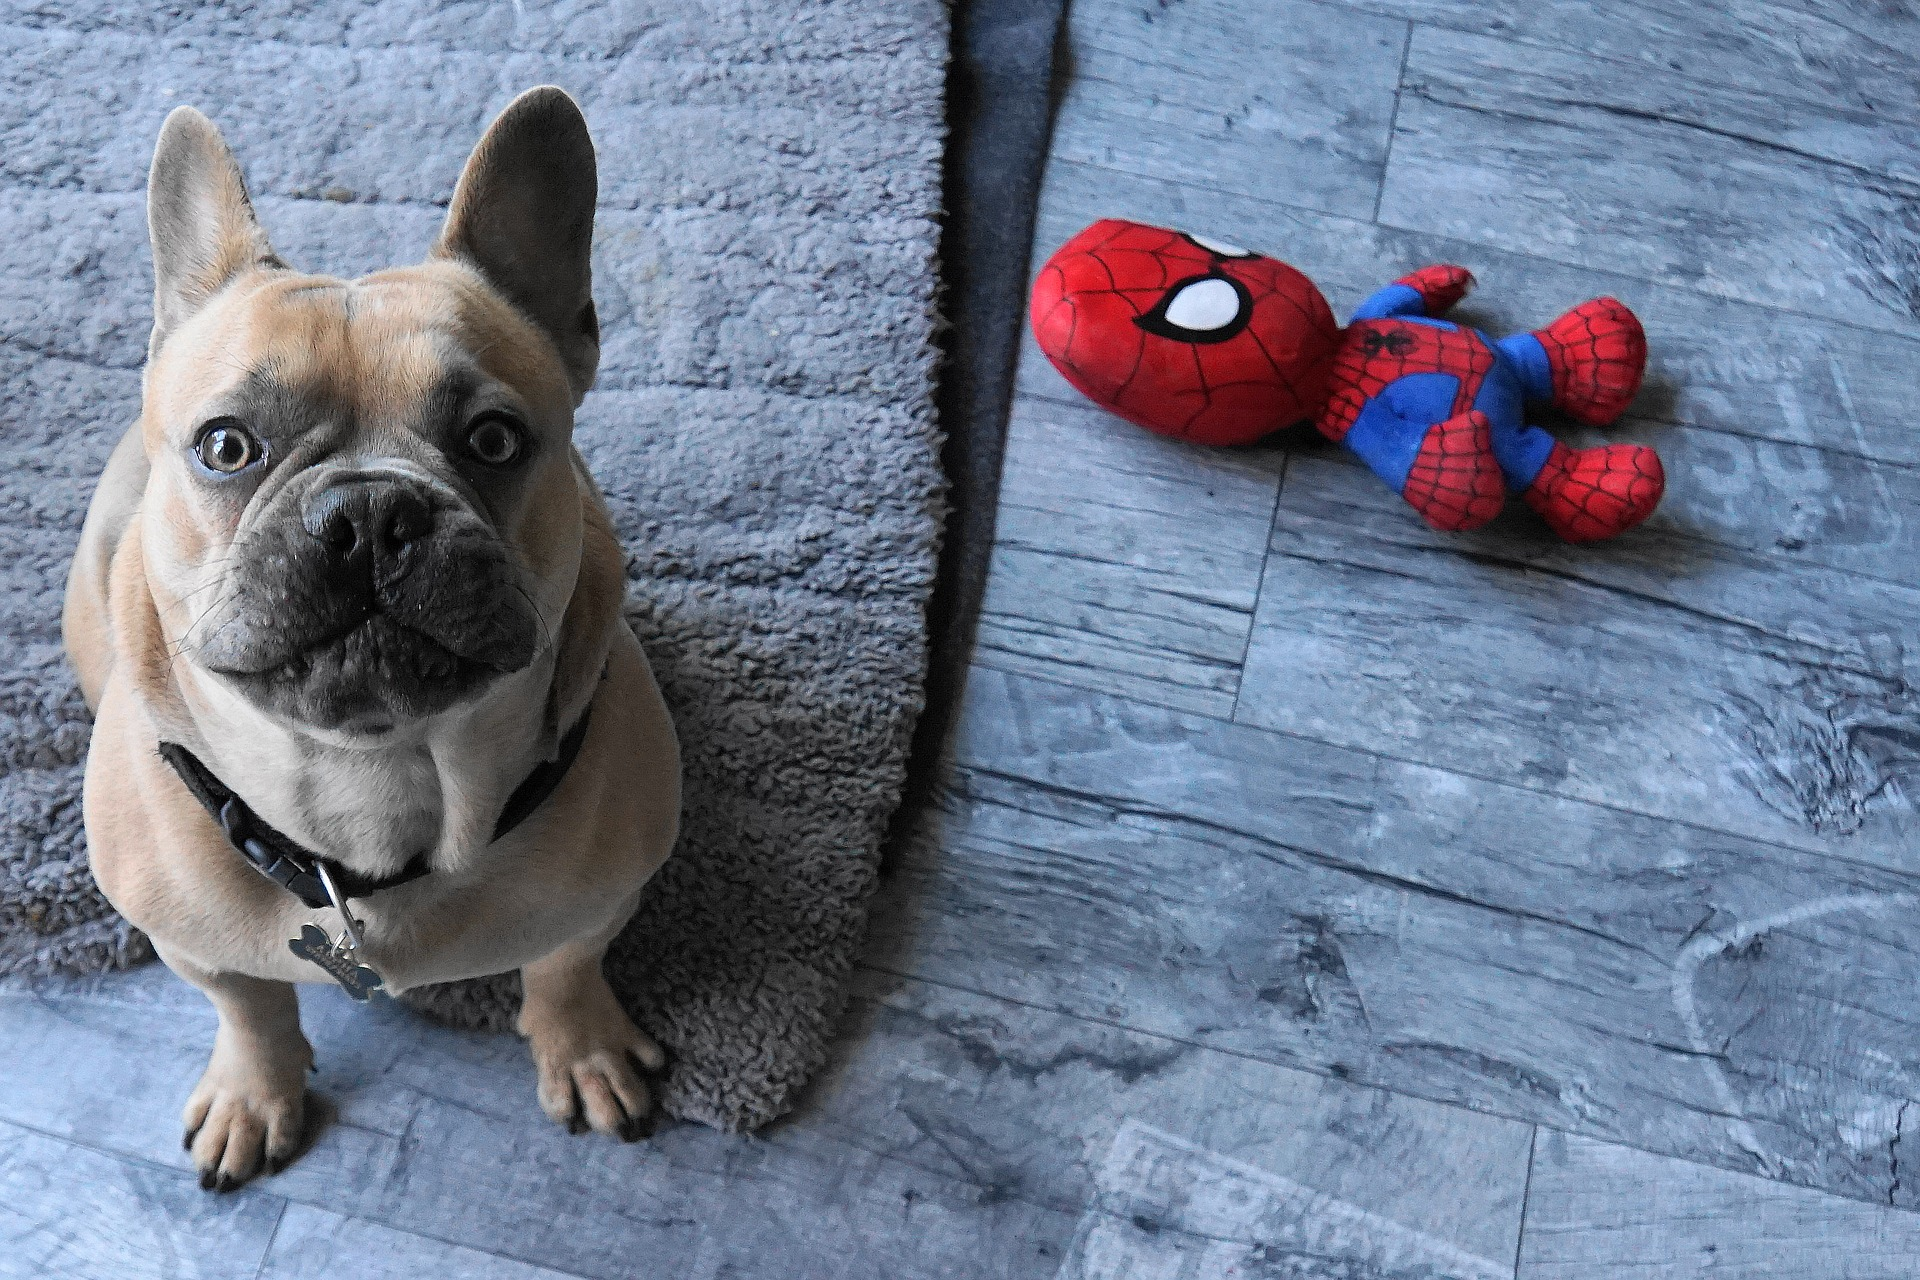 https://pixabay.com/photos/french-bulldog-dog-toys-spiderman-4025552/